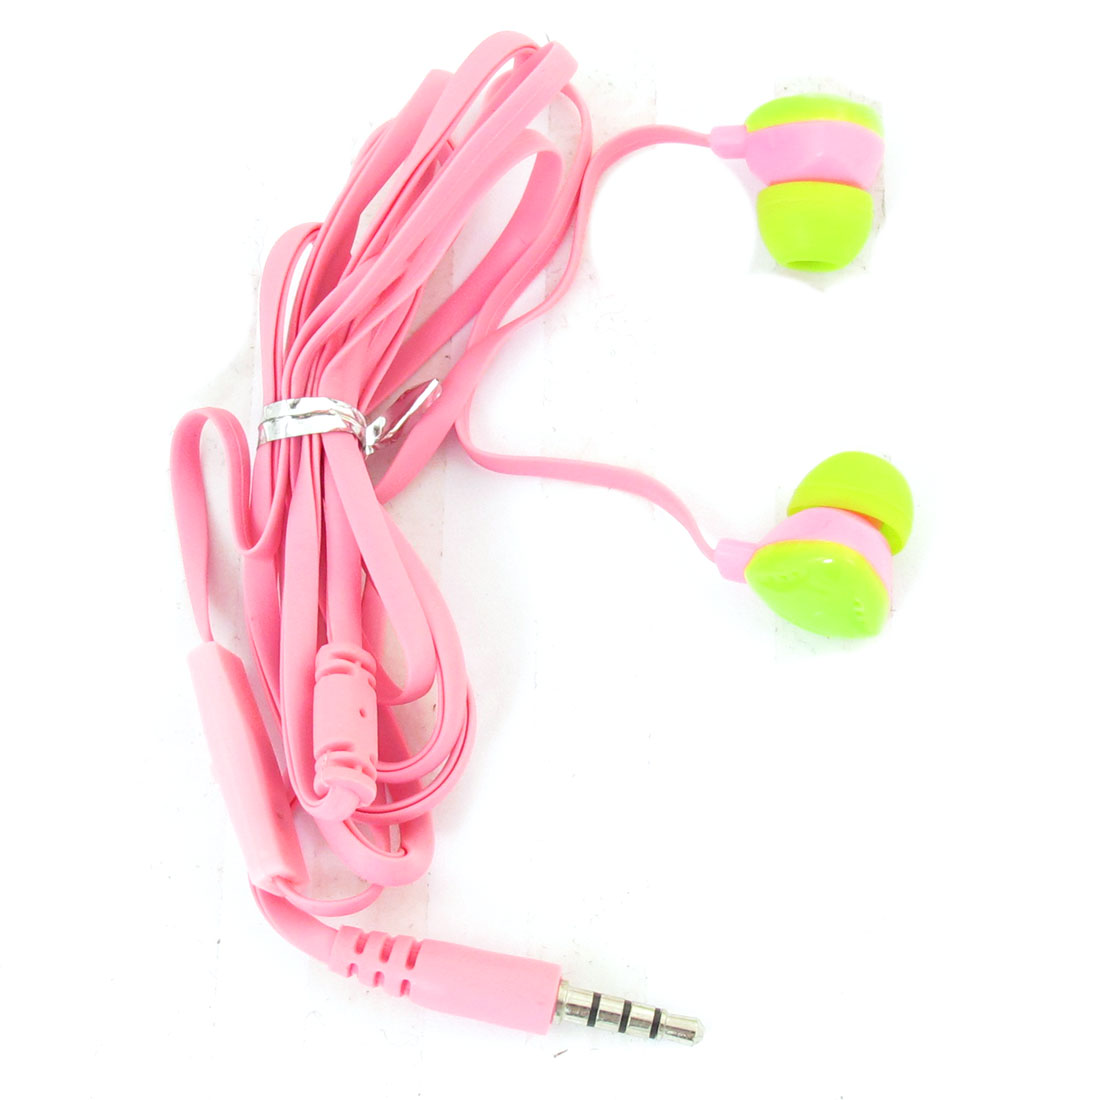 Green Triangle Earbuds 3.5mm Plug In Ear Earphone w Mic Pink for iPhone iPad iPod